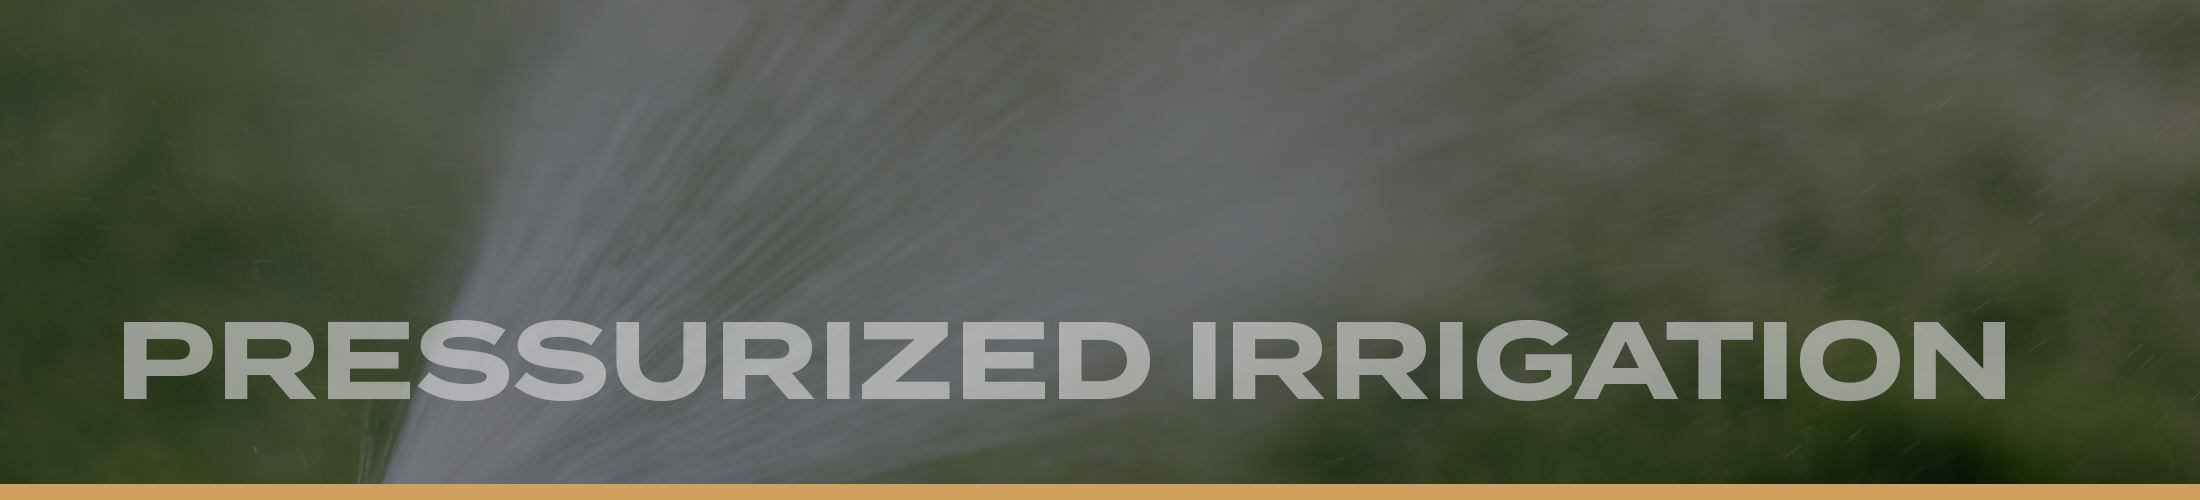 Website Banners 2020 - Pressurized Irrigation